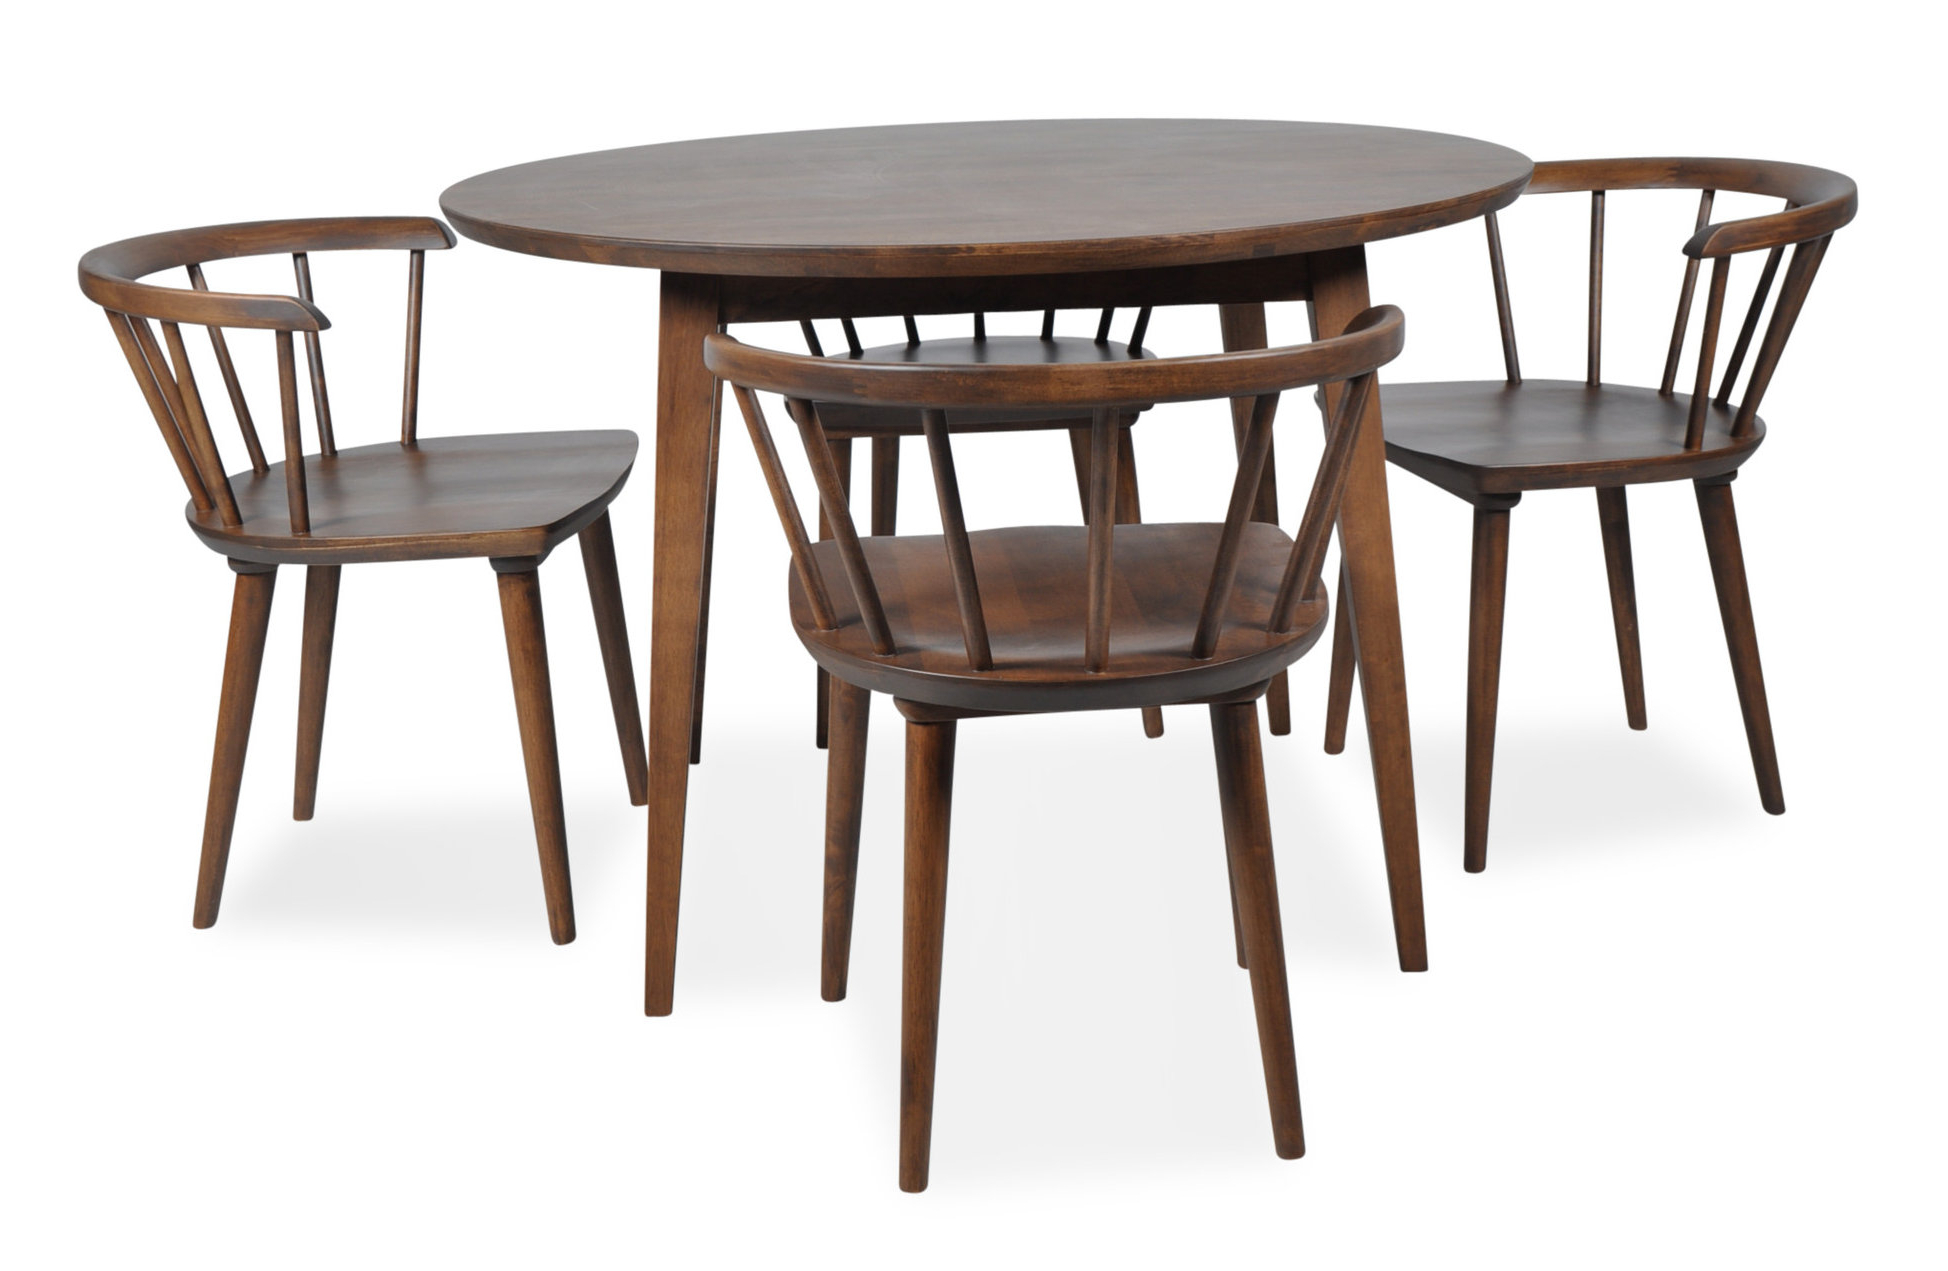 Popular 5 Piece Breakfast Nook Dining Sets With Burgan 5 Piece Solid Wood Breakfast Nook Dining Set (View 14 of 20)